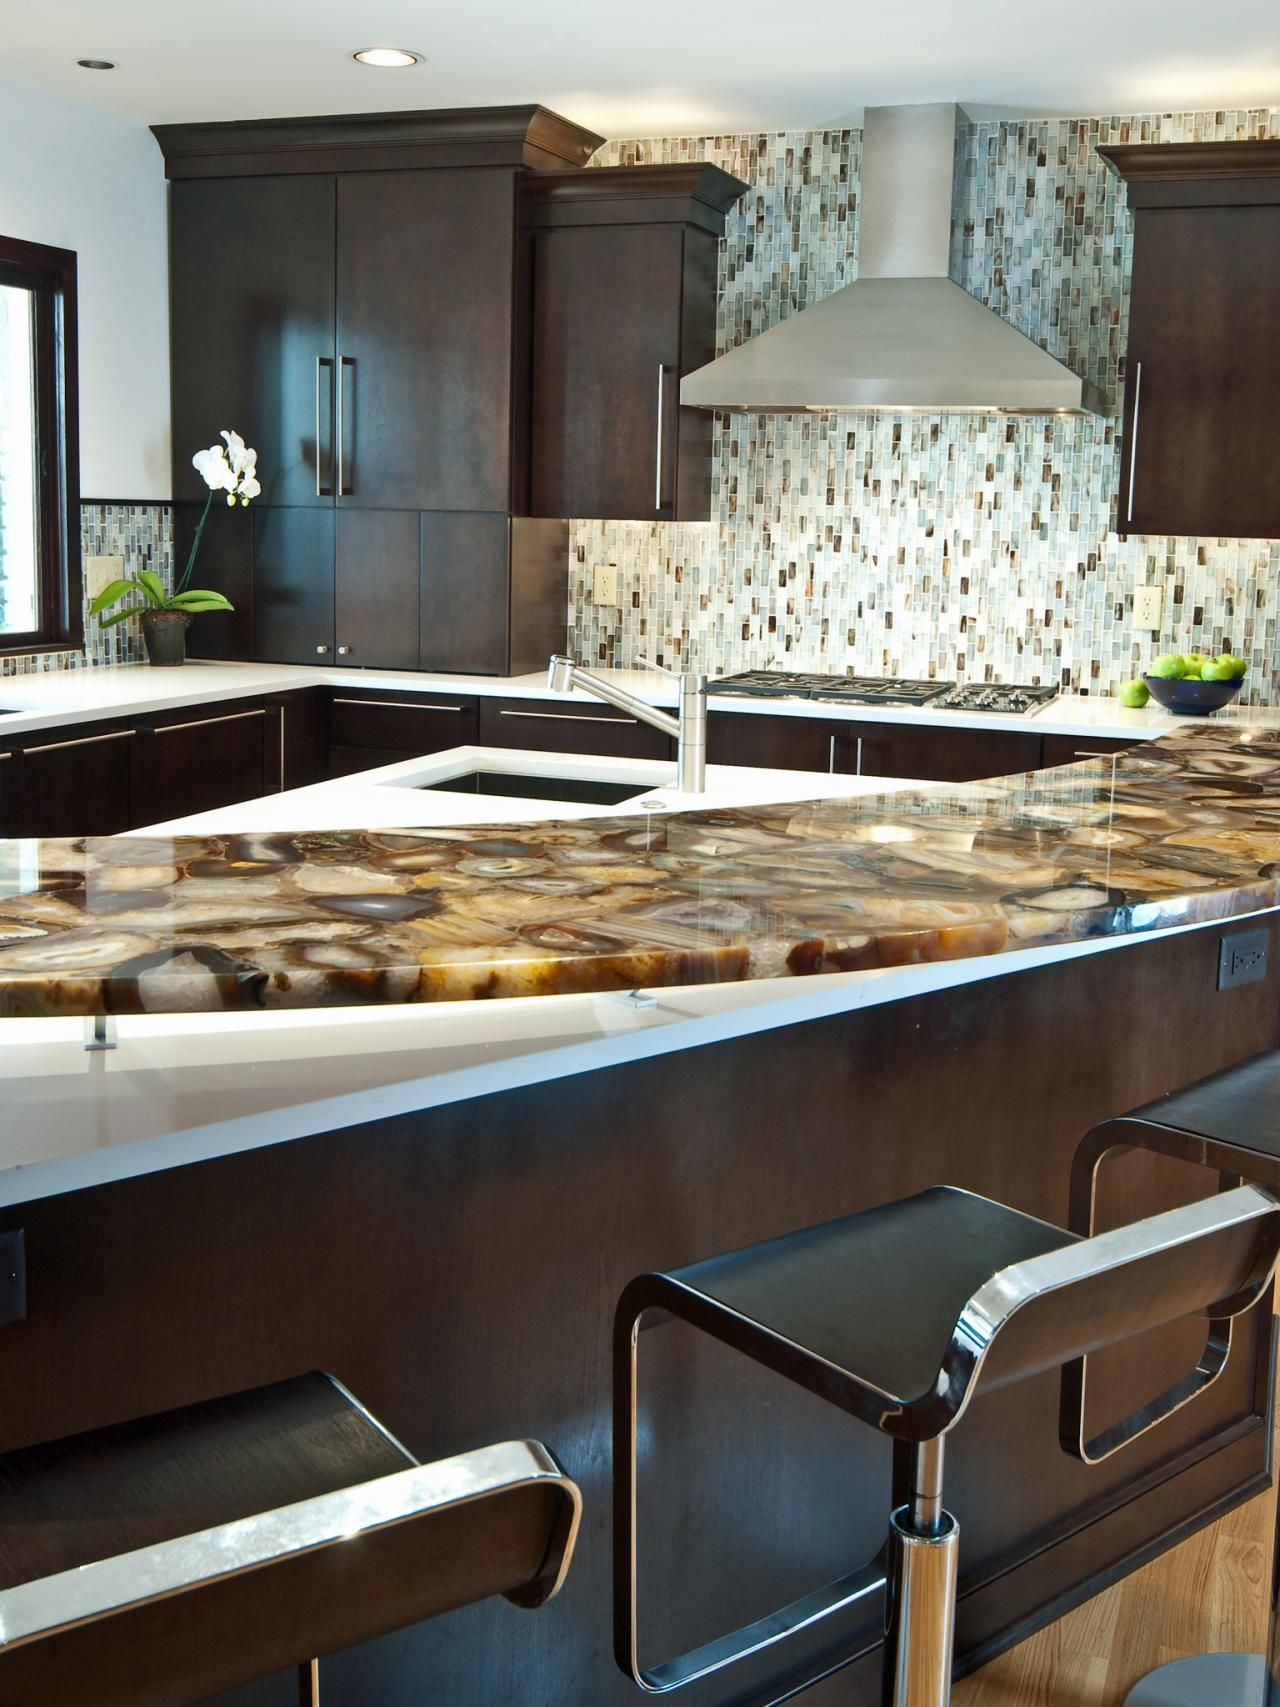 10 High-End Kitchen Countertop Choices | Pinterest | White quartz ...